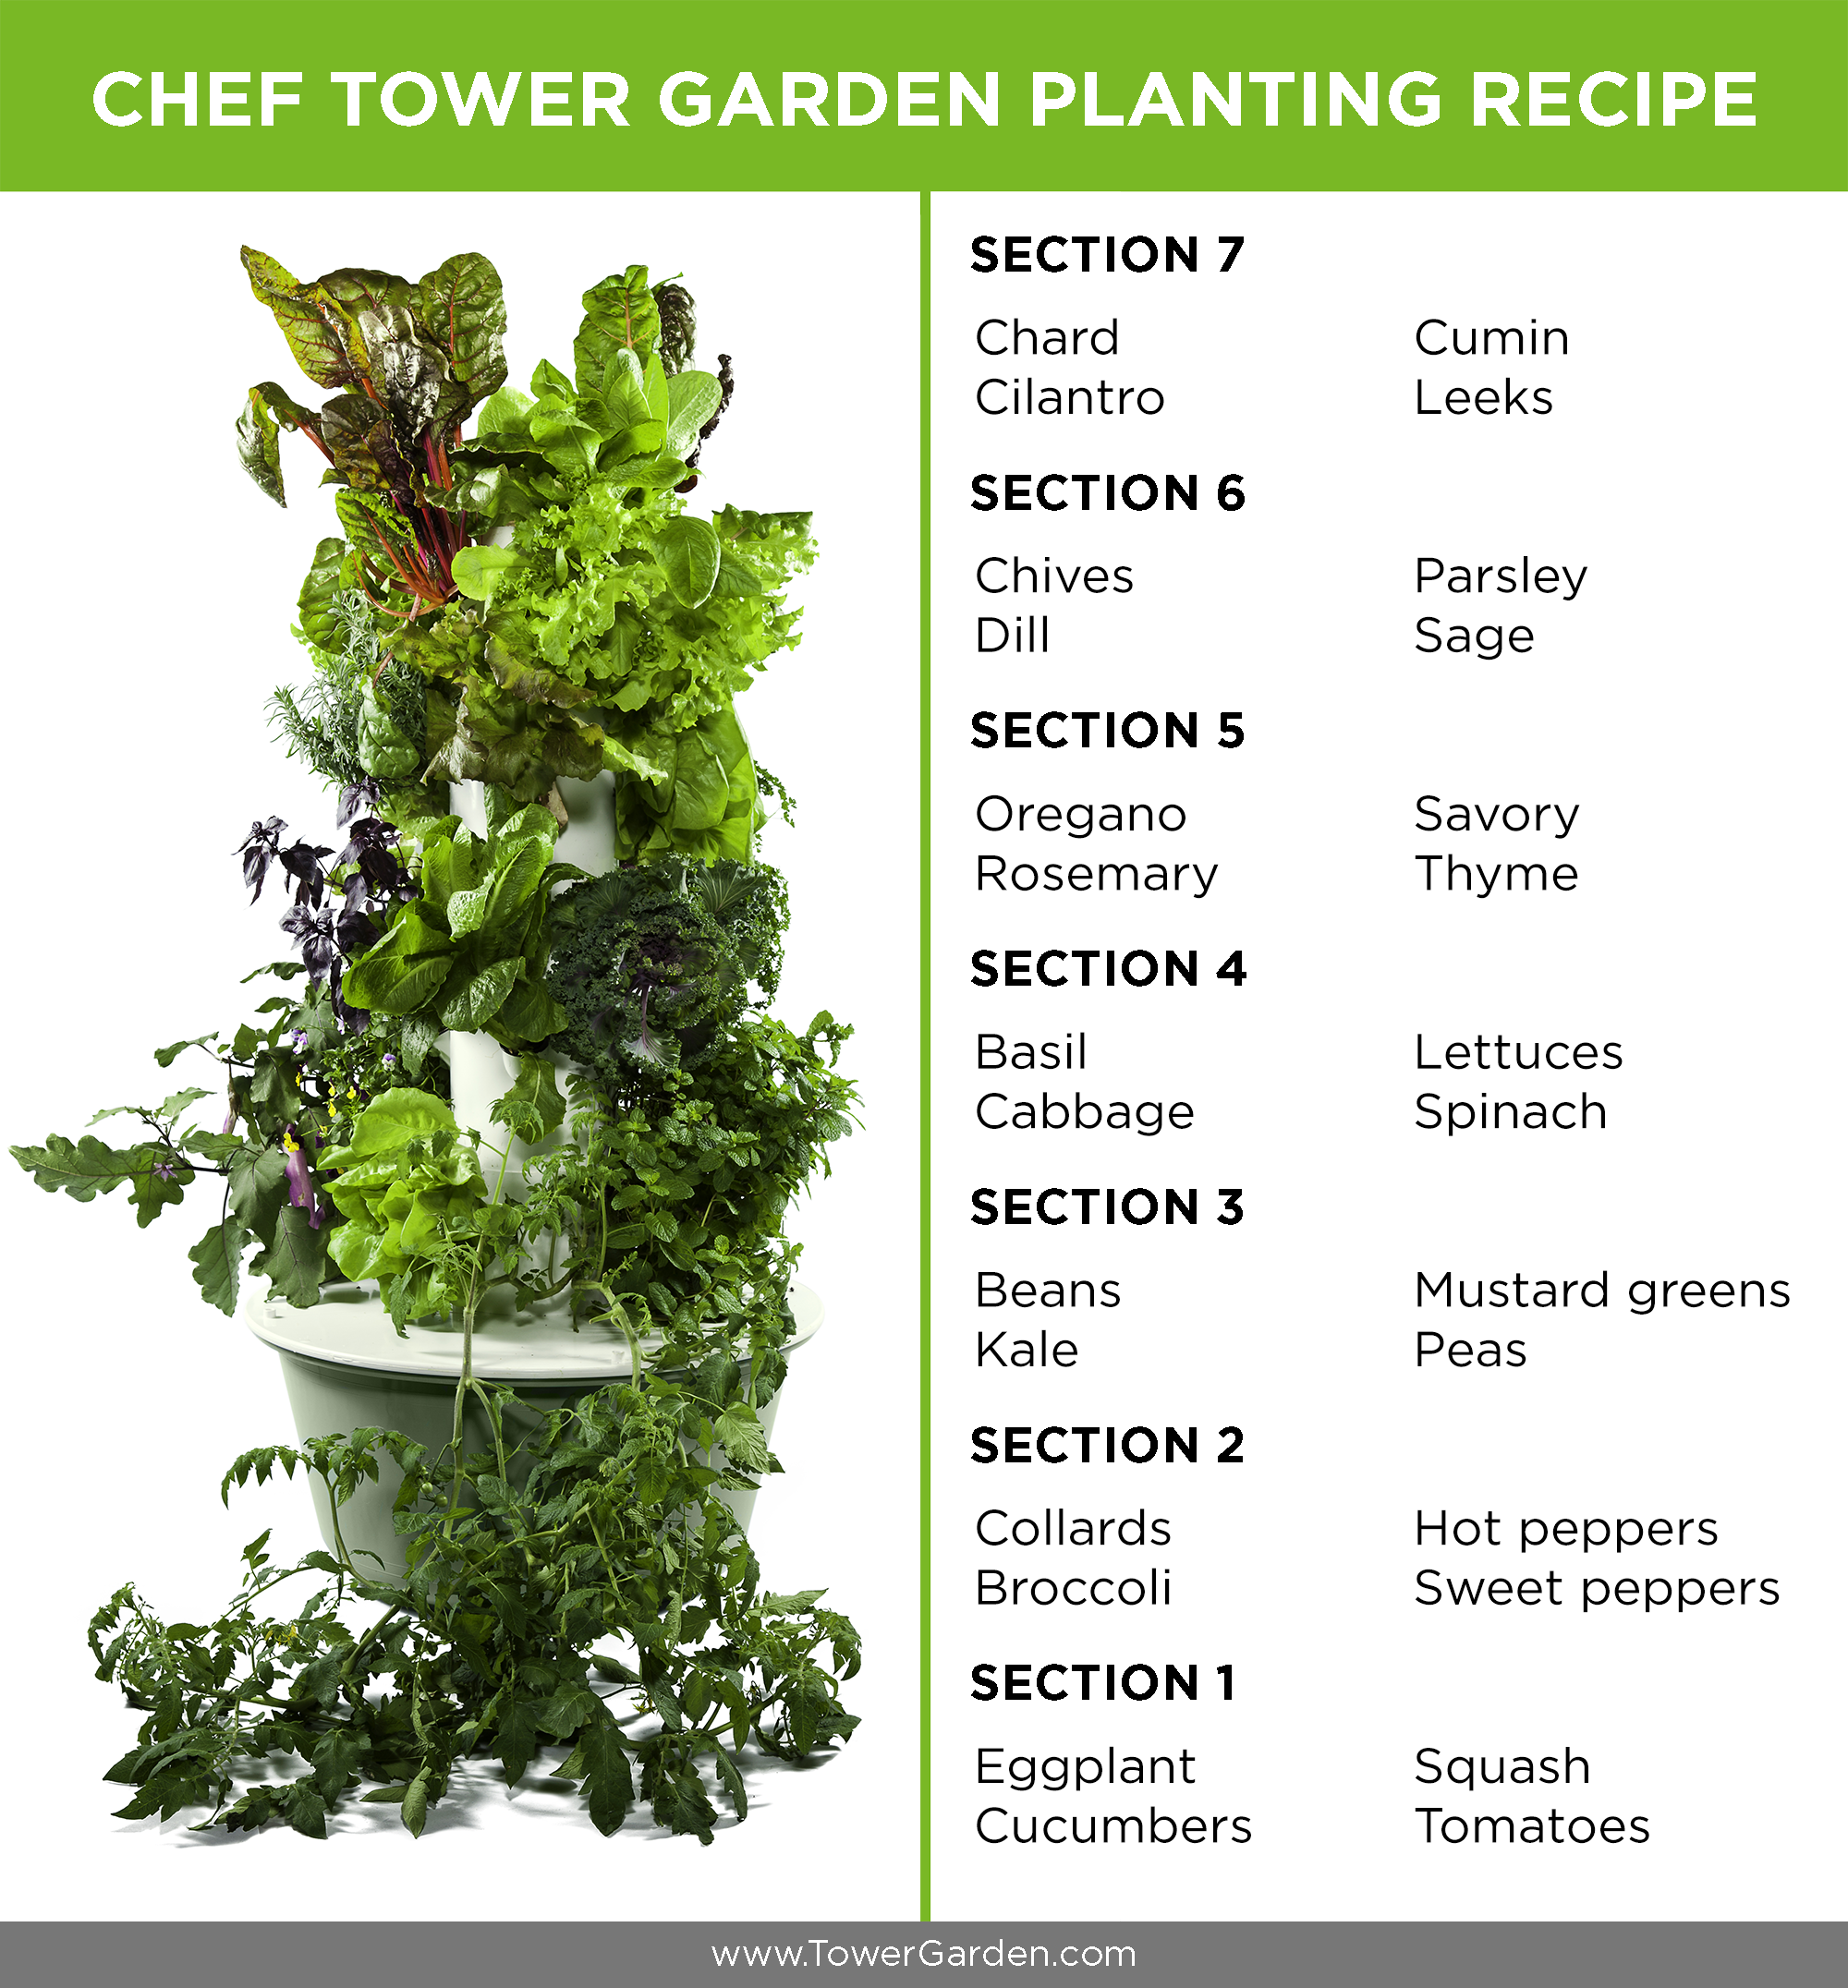 28 Plants To Grow For A Chef Tower Garden Juice Plus Tower Garden Tower Garden Plants